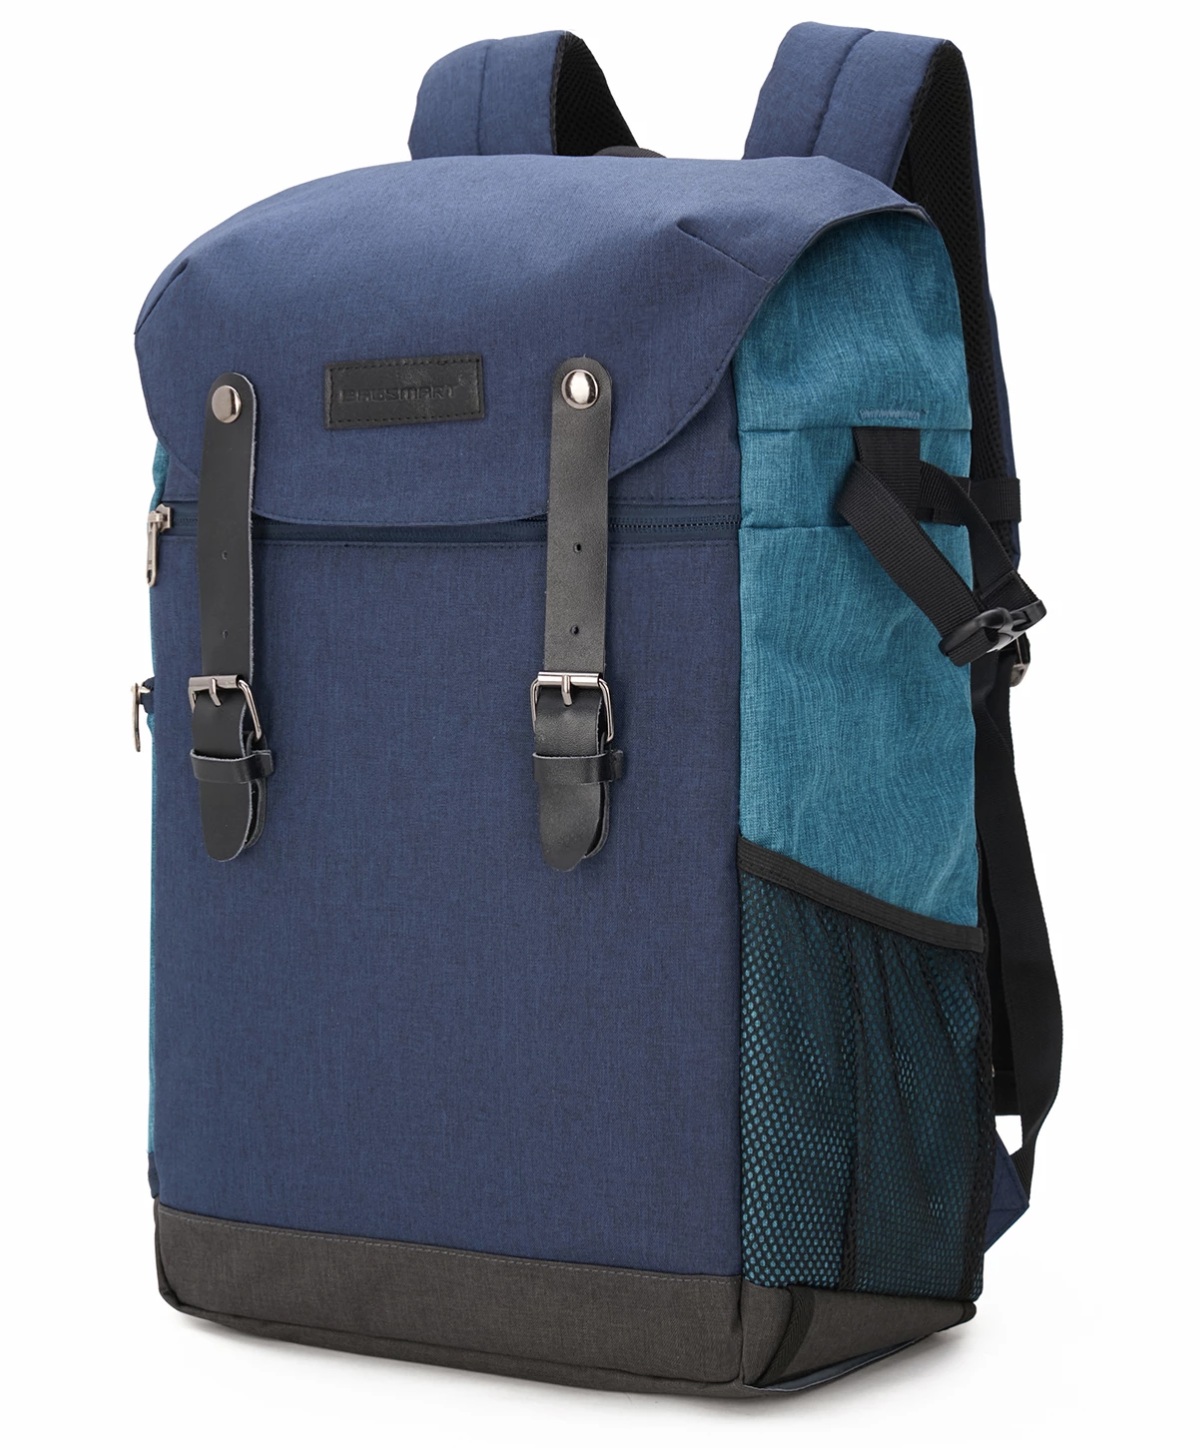 bagsmart portland camera backpack